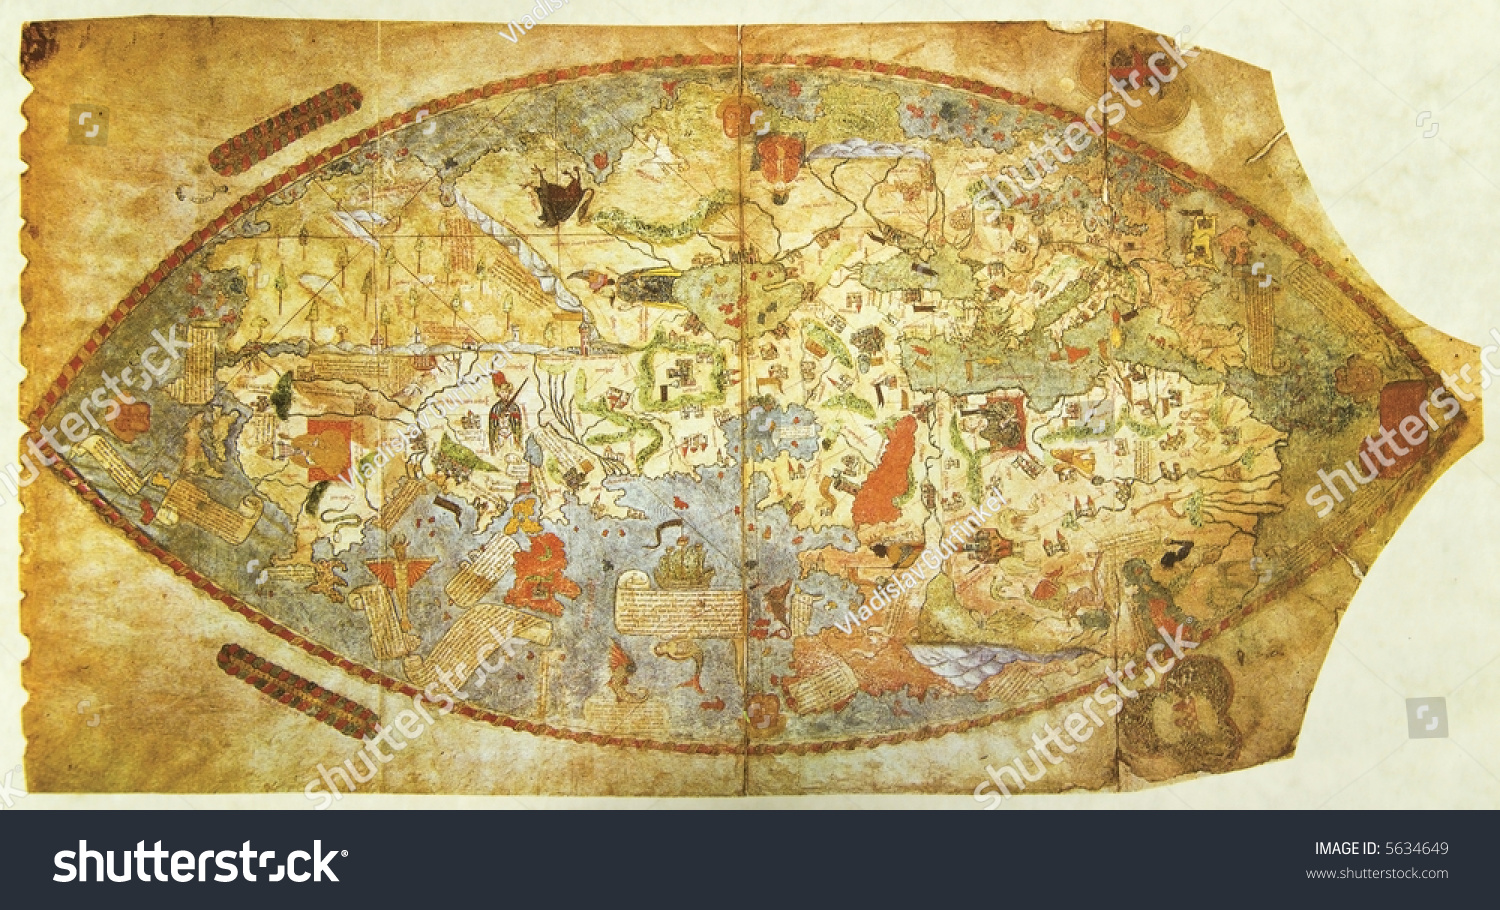 Map Of The World Before Columbus.Medieval Map World Drown Before Columbus Stock Photo Edit Now